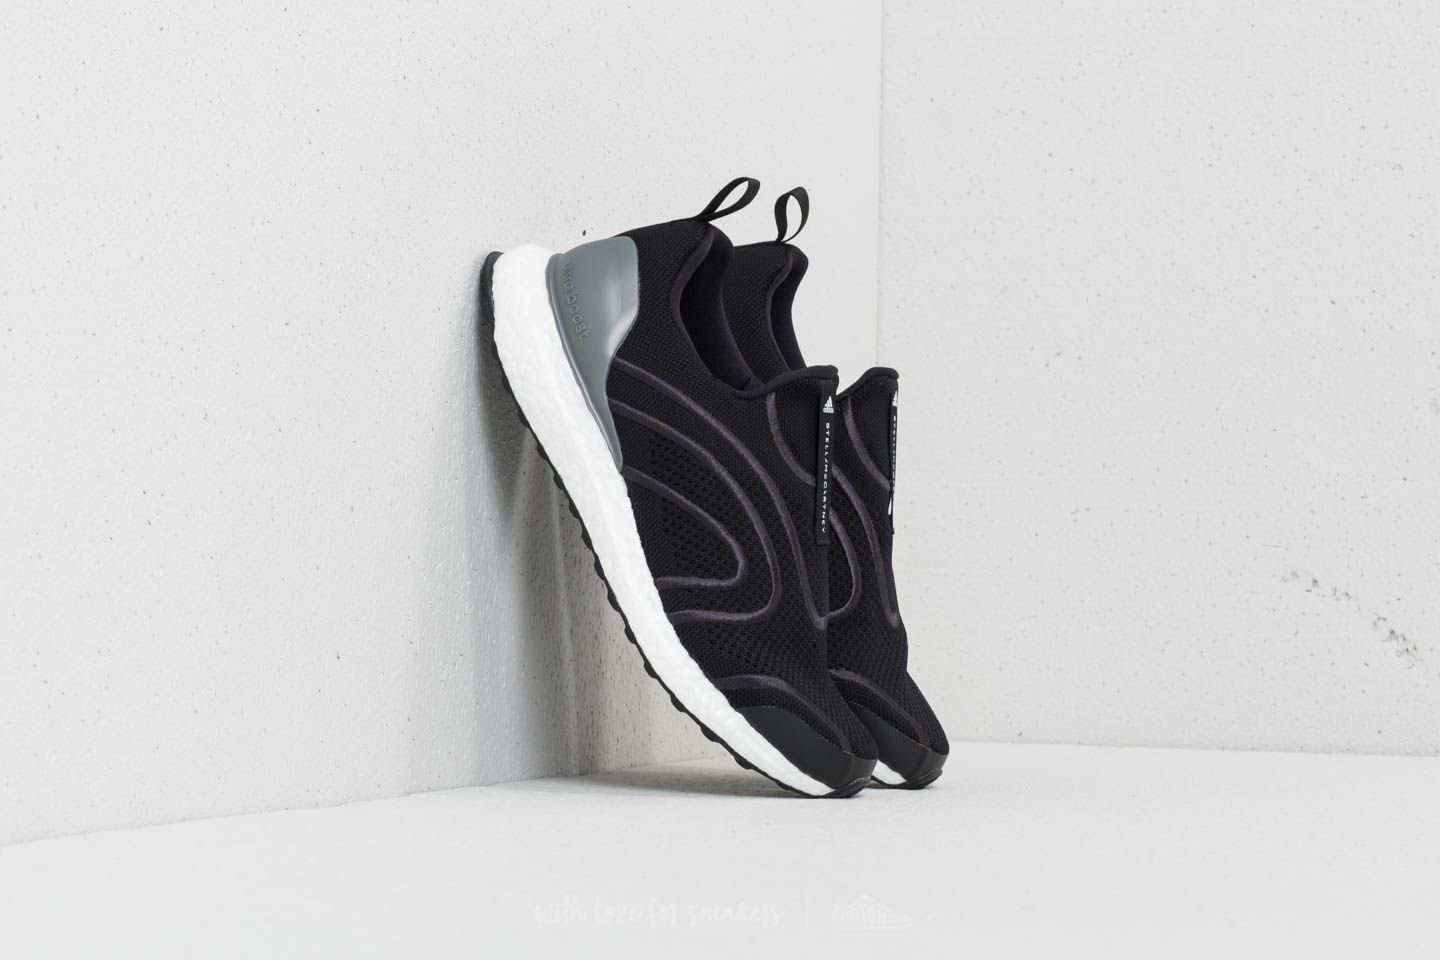 adidas x Stella McCartney Ultraboost Uncaged Core Black  Black Silver  Metallic  Eggshell Grey at 2fd6a1a14f9f4